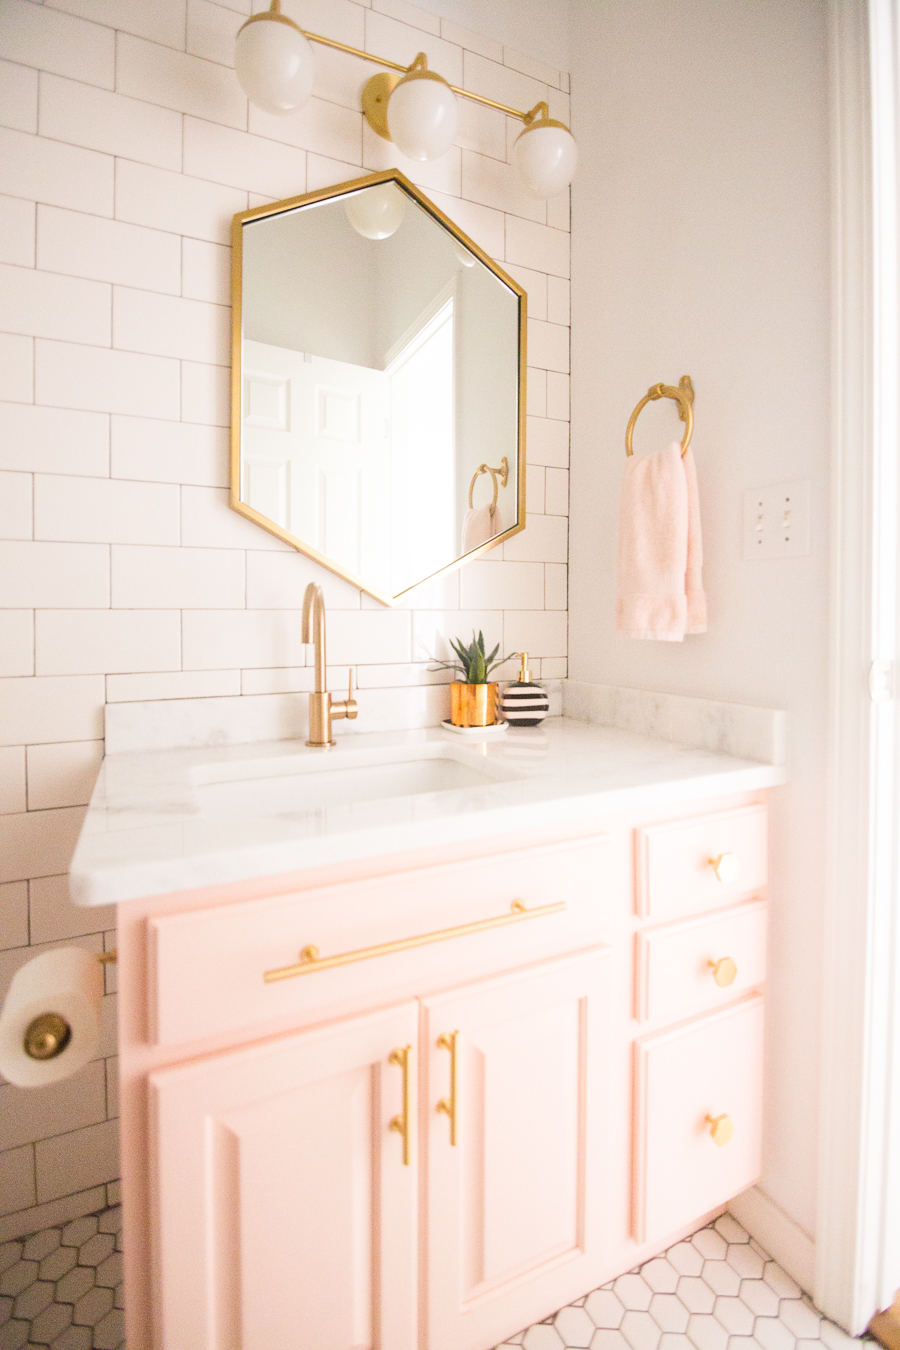 Love this gold hexagon mirror with blush pink cabinets and gold hardware! Such a pretty pink bathroom with gold orb sconces!